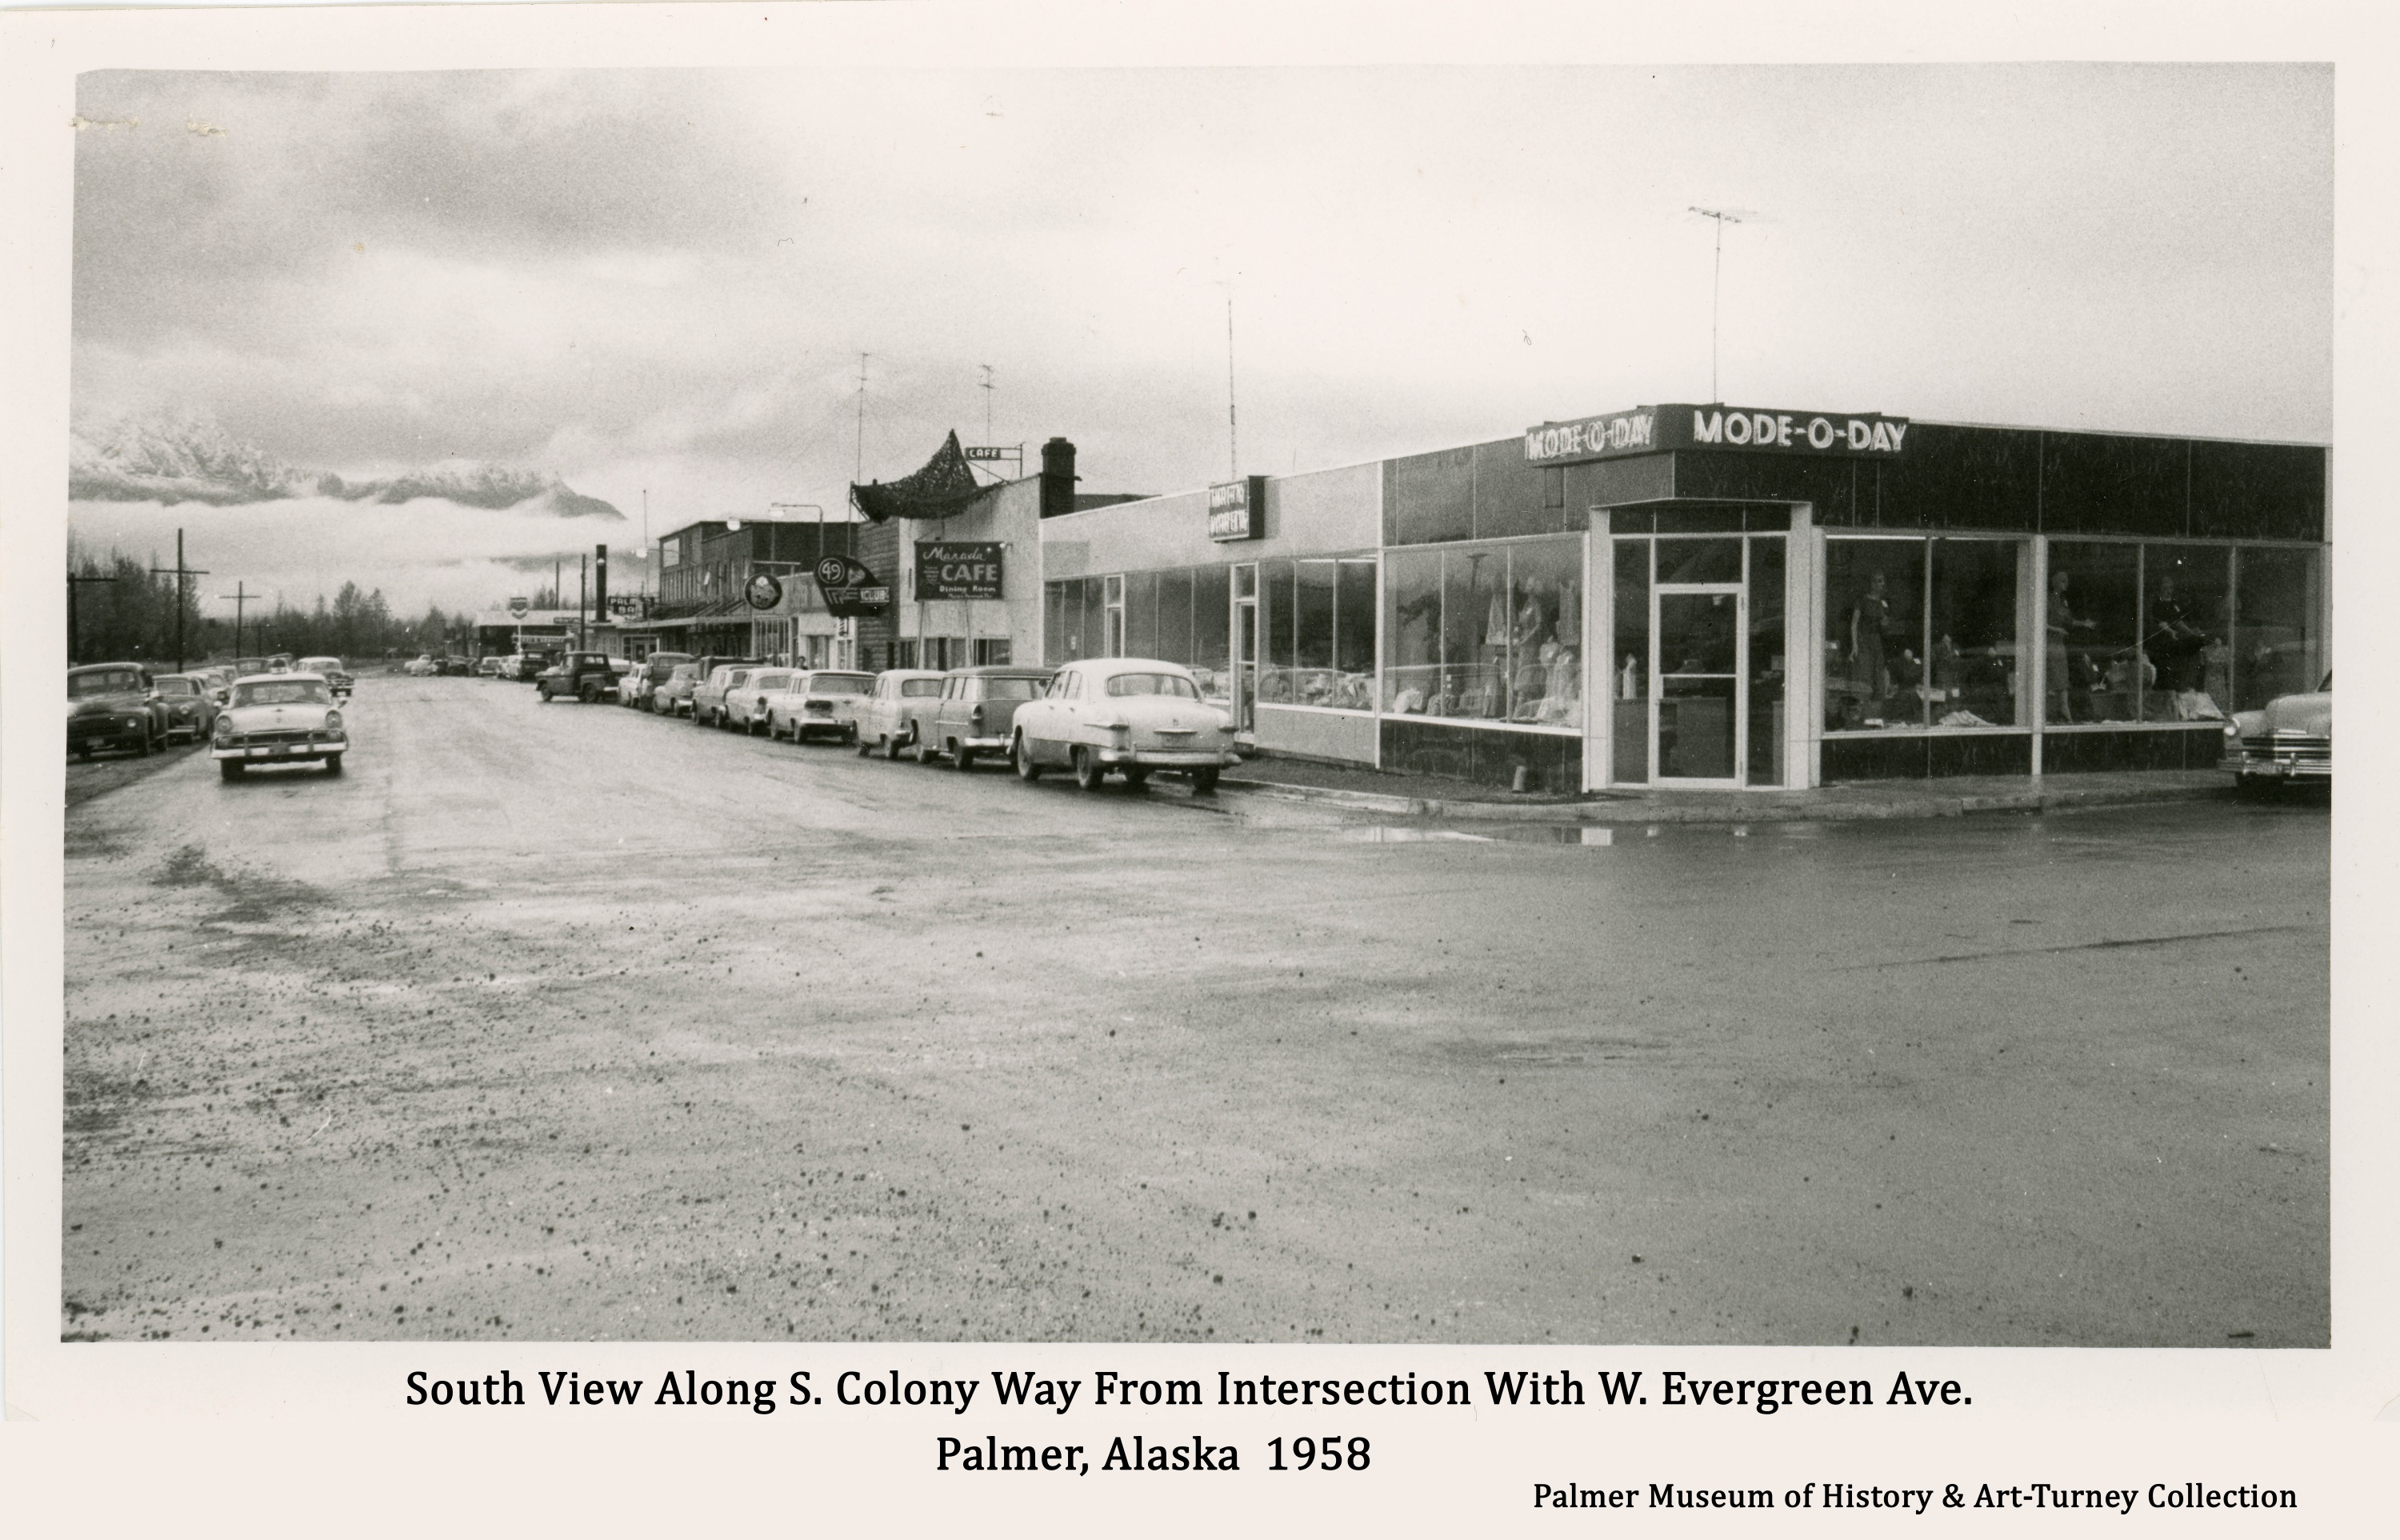 Image is the south view along South Colony Way in Palmer as it appeared in fall of 1958, viewed from the intersection with W. Evergreen Ave.   Automobiles are parallel parked on both sides of the street, signs are evident and tall TV antennas are visible.  The street is newly paved.